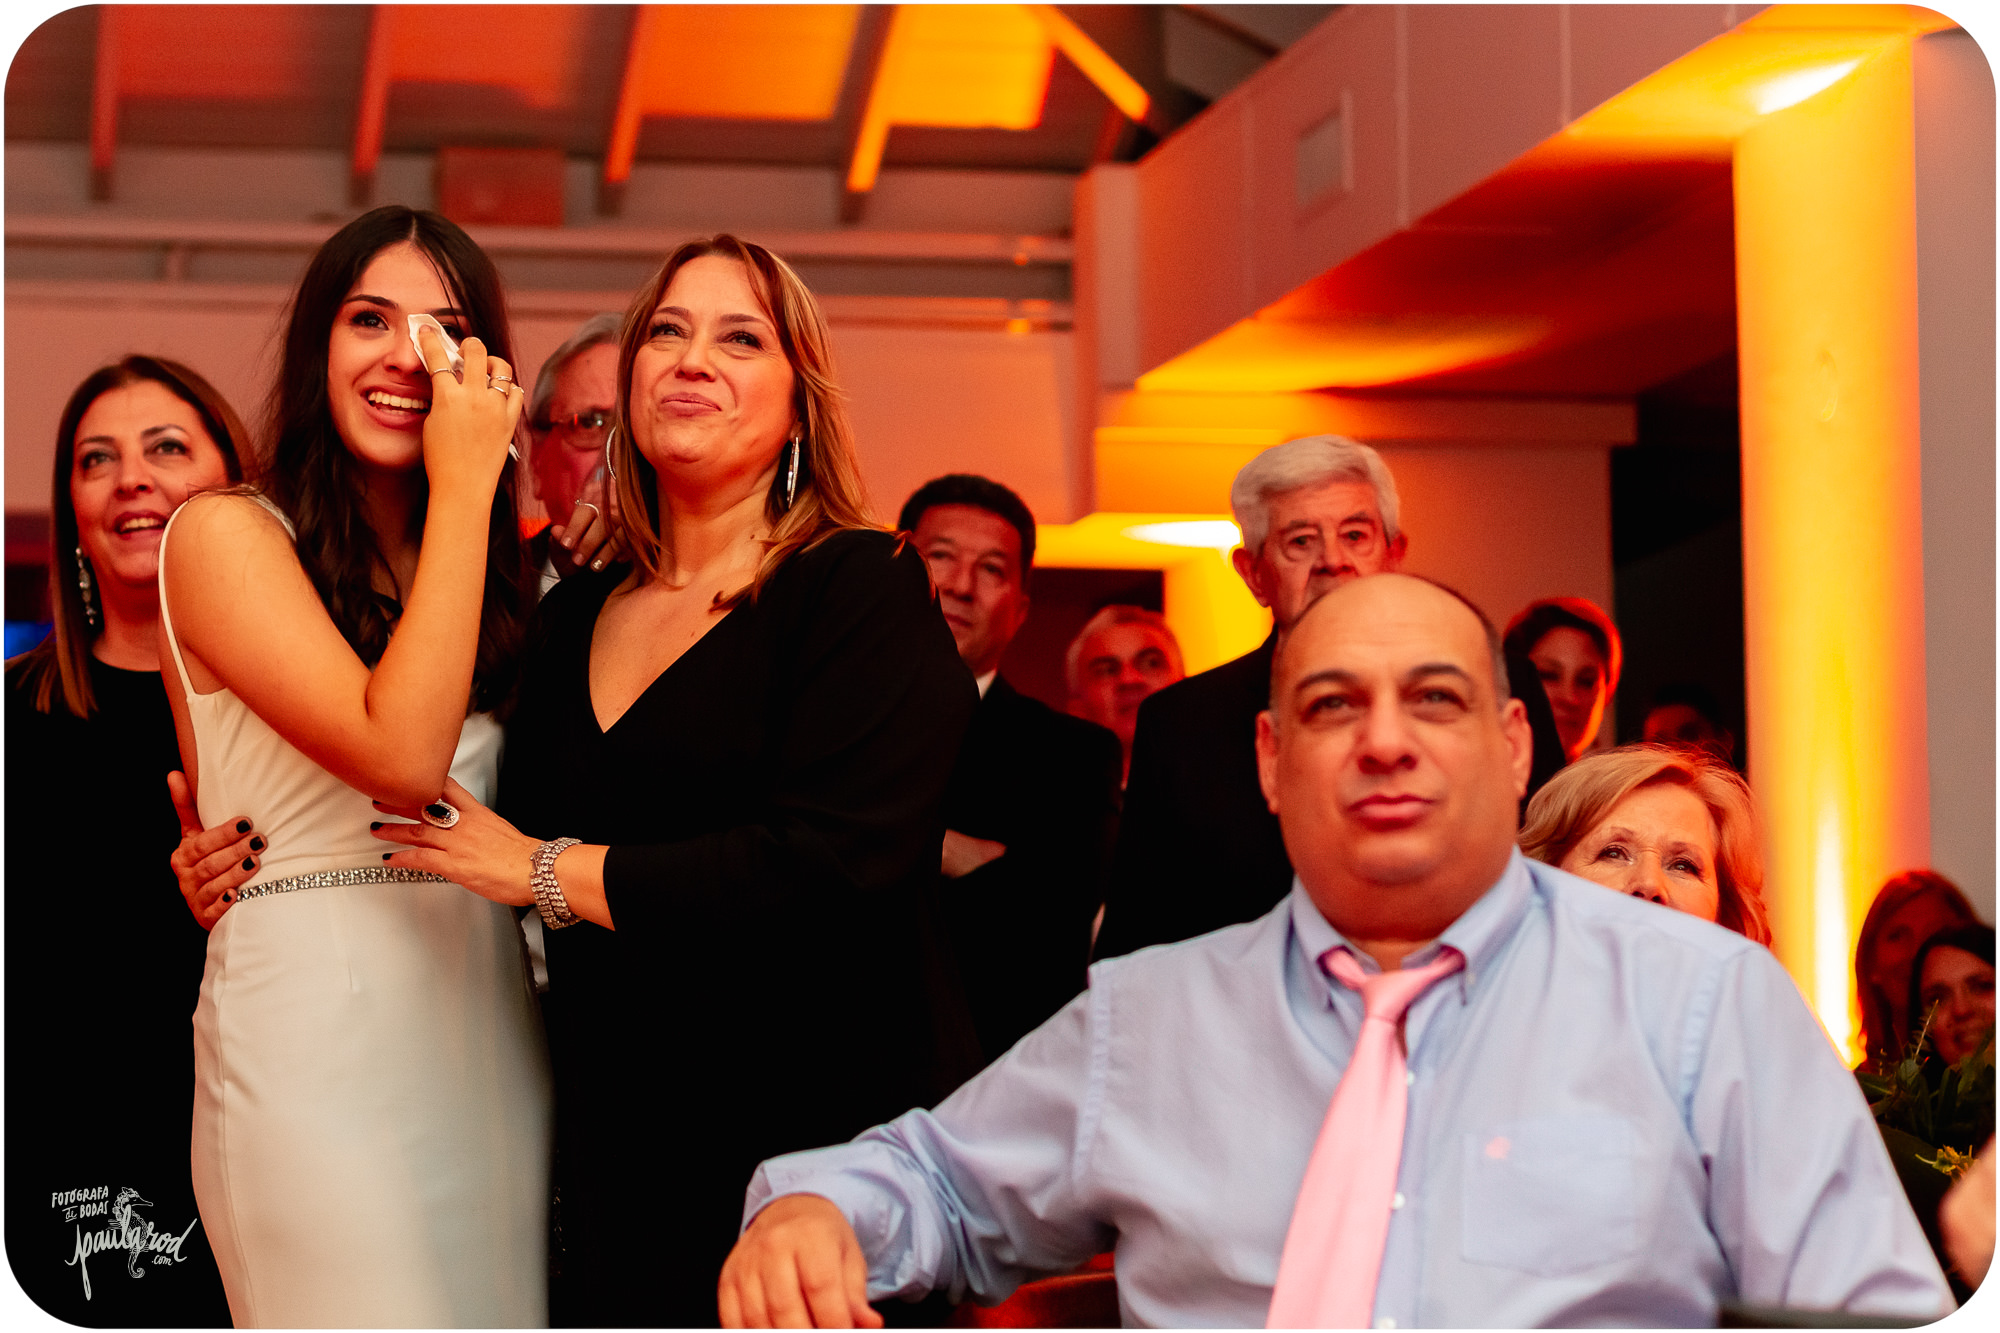 video_cronologico_para_eventos (4).jpg